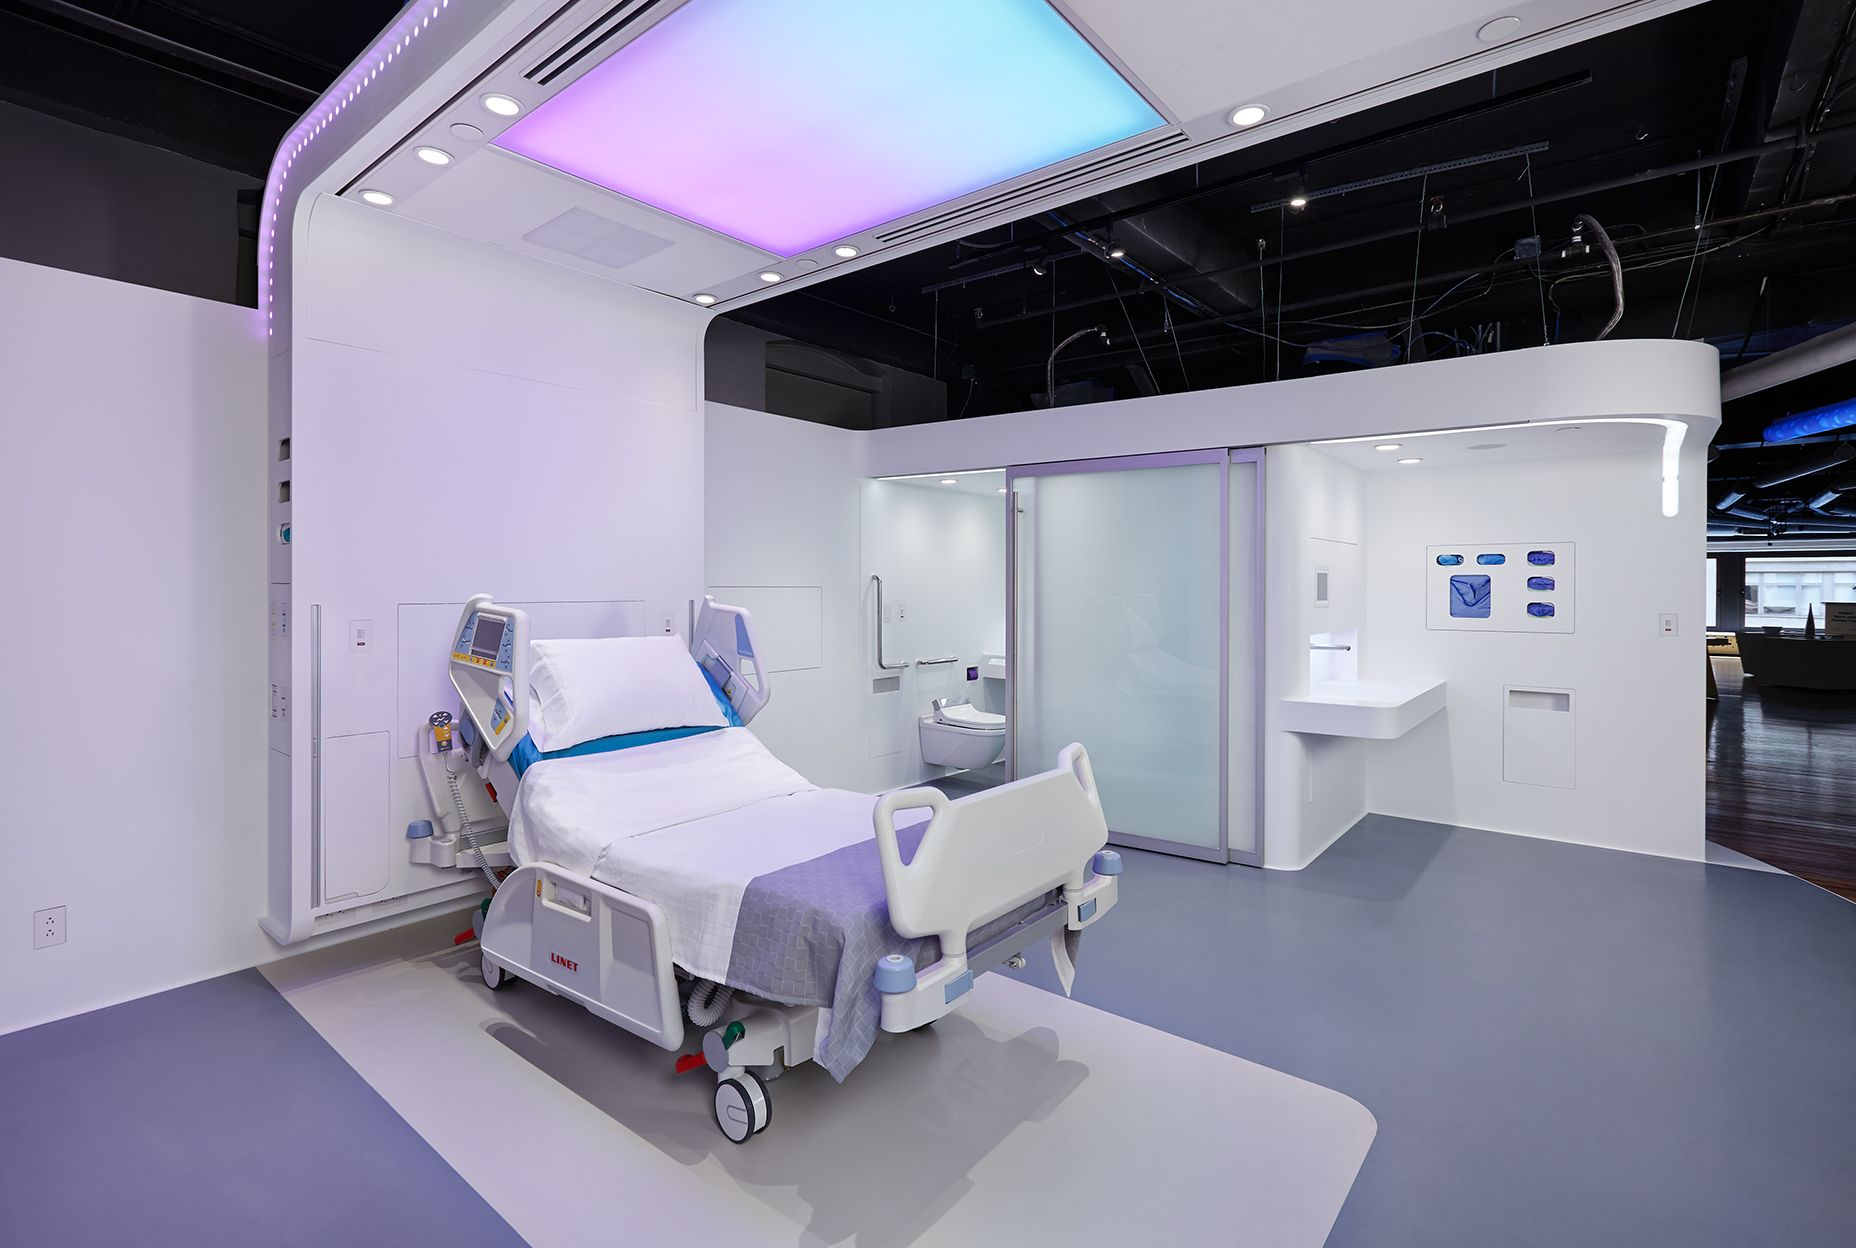 A collaborative design for an in patient healthcare environment of the future intense lighting